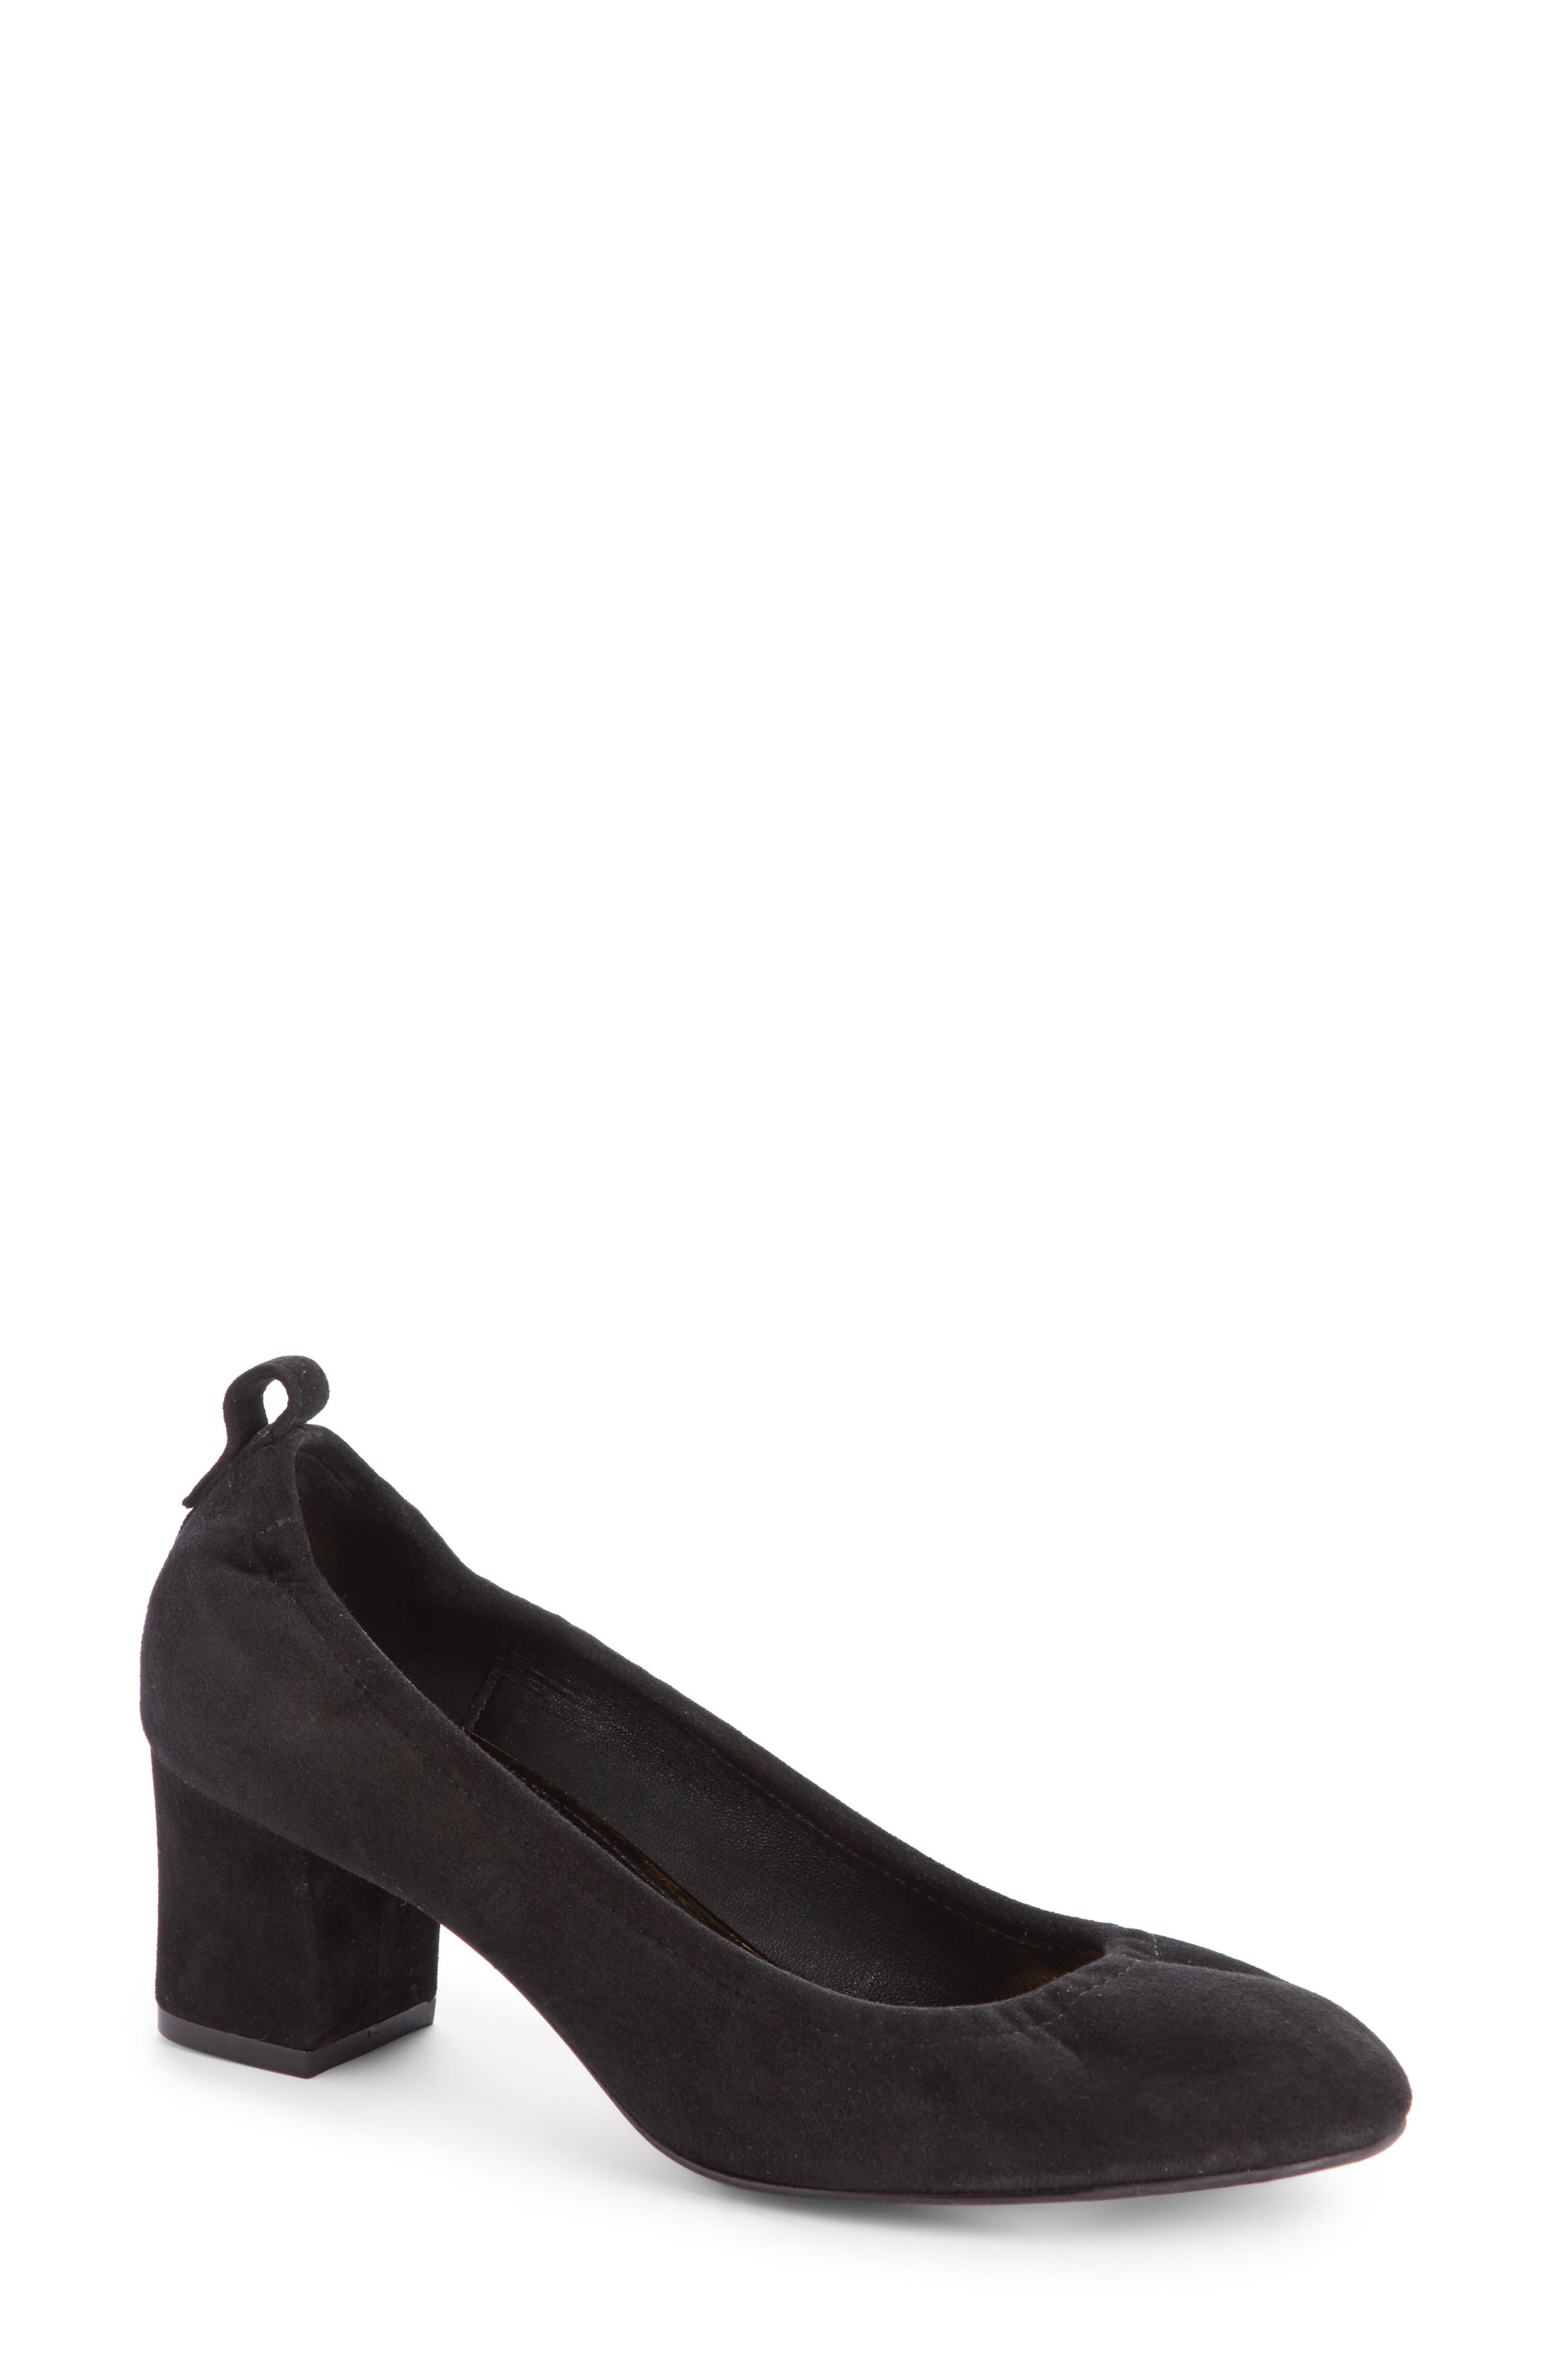 Alternate Image 1 Selected - Lanvin Cube Block Heel Pump (Women)